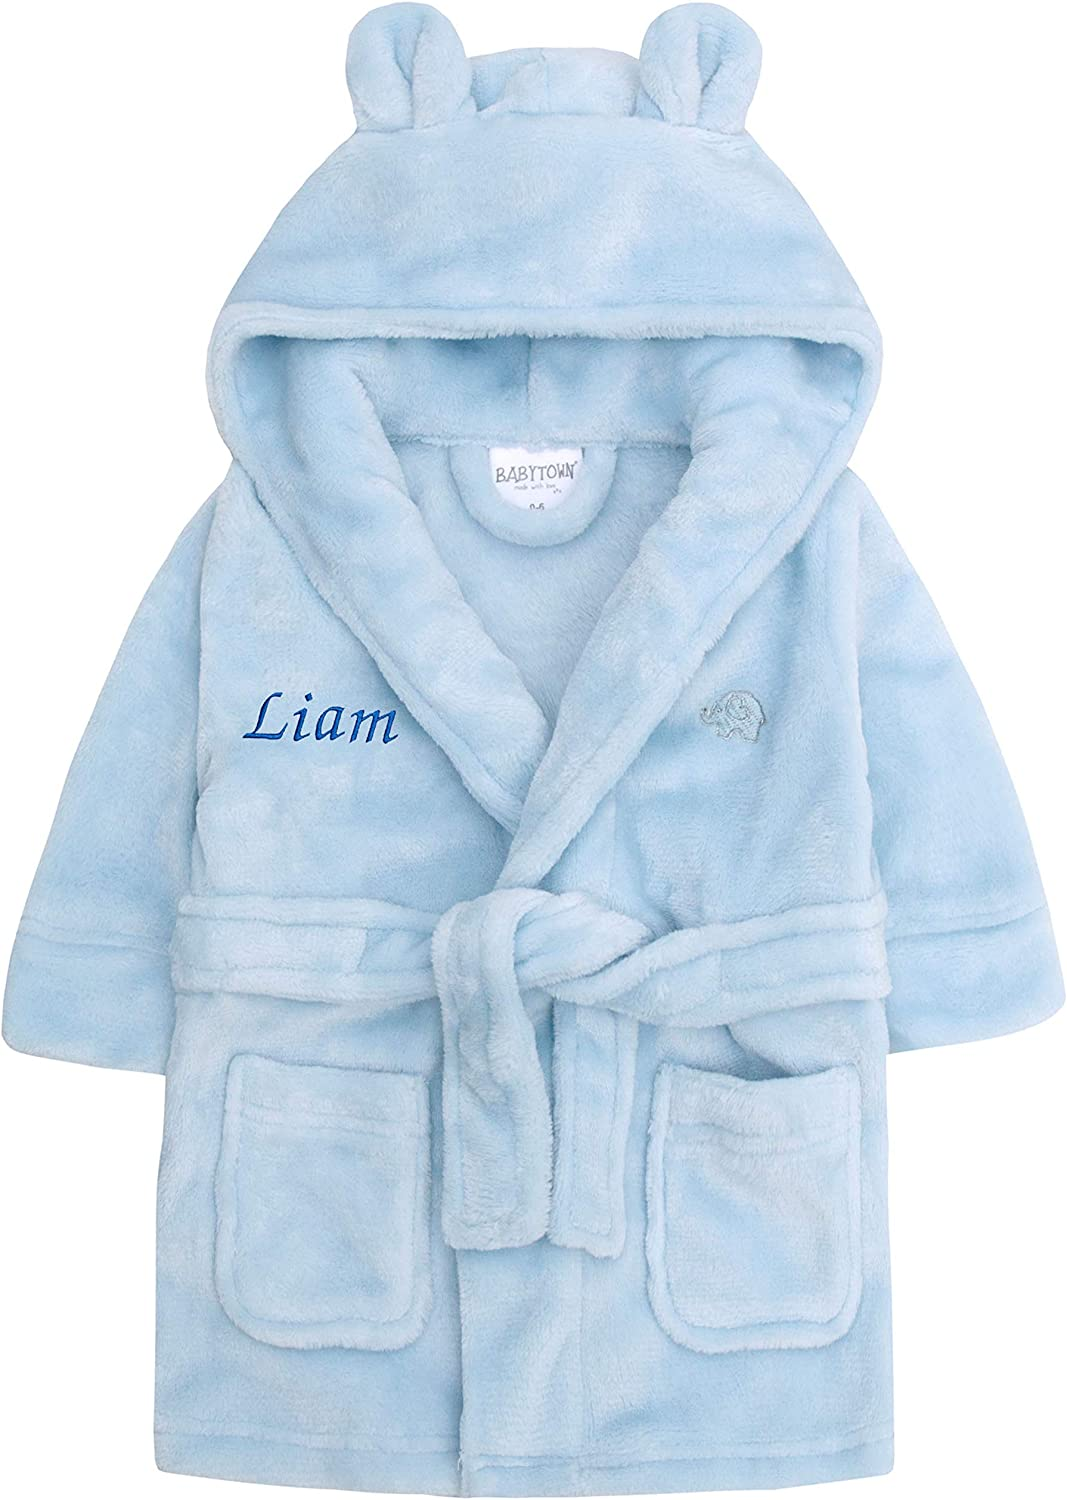 Baby Girl Boy Personalised Dressing Gown Bathrobe Hooded Bear Ear Pink Blue Grey White